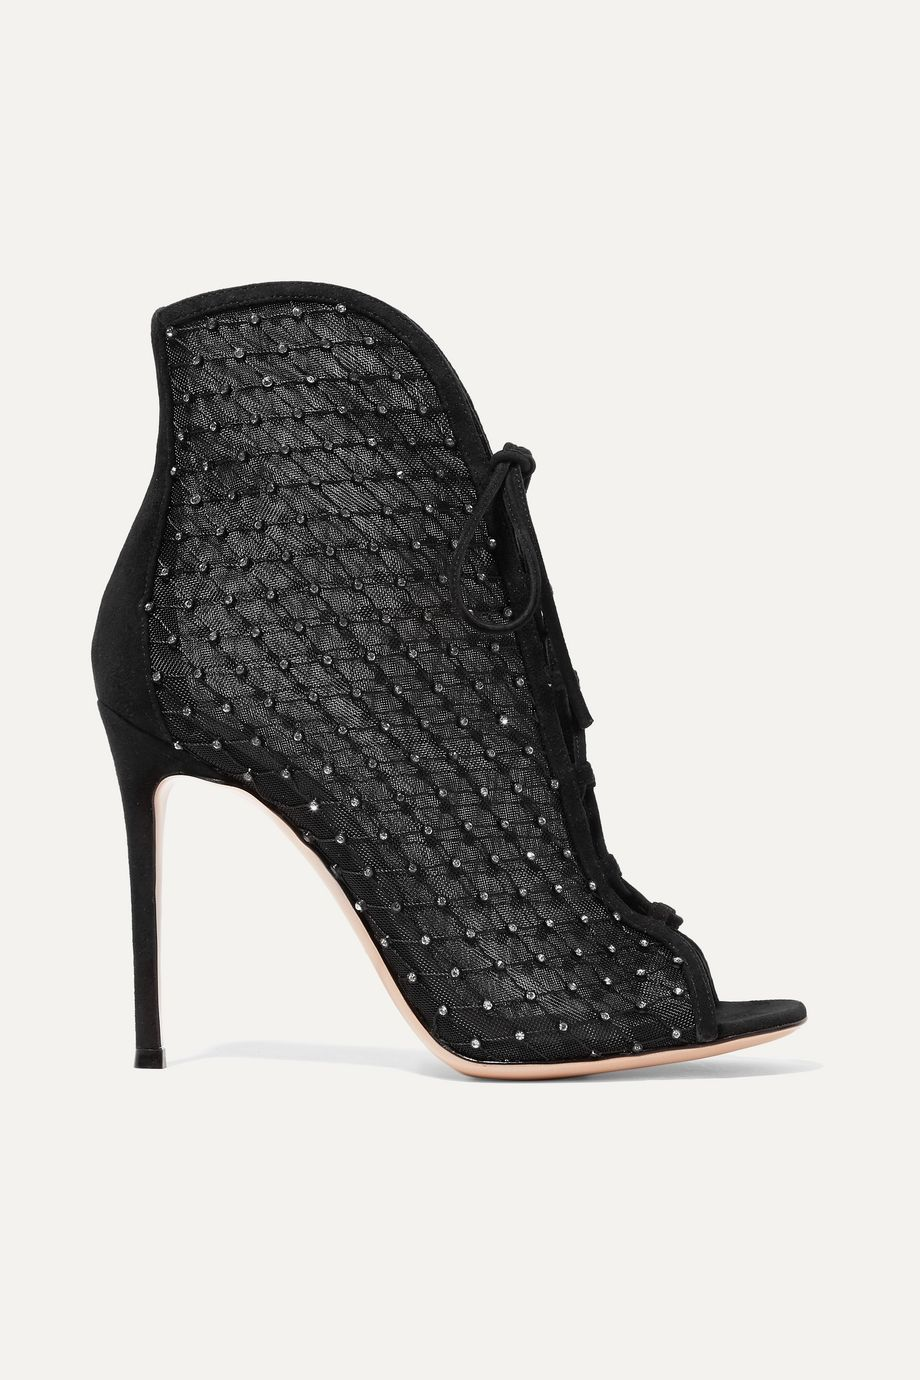 Gianvito Rossi 105 embellished suede-trimmed mesh ankle boots